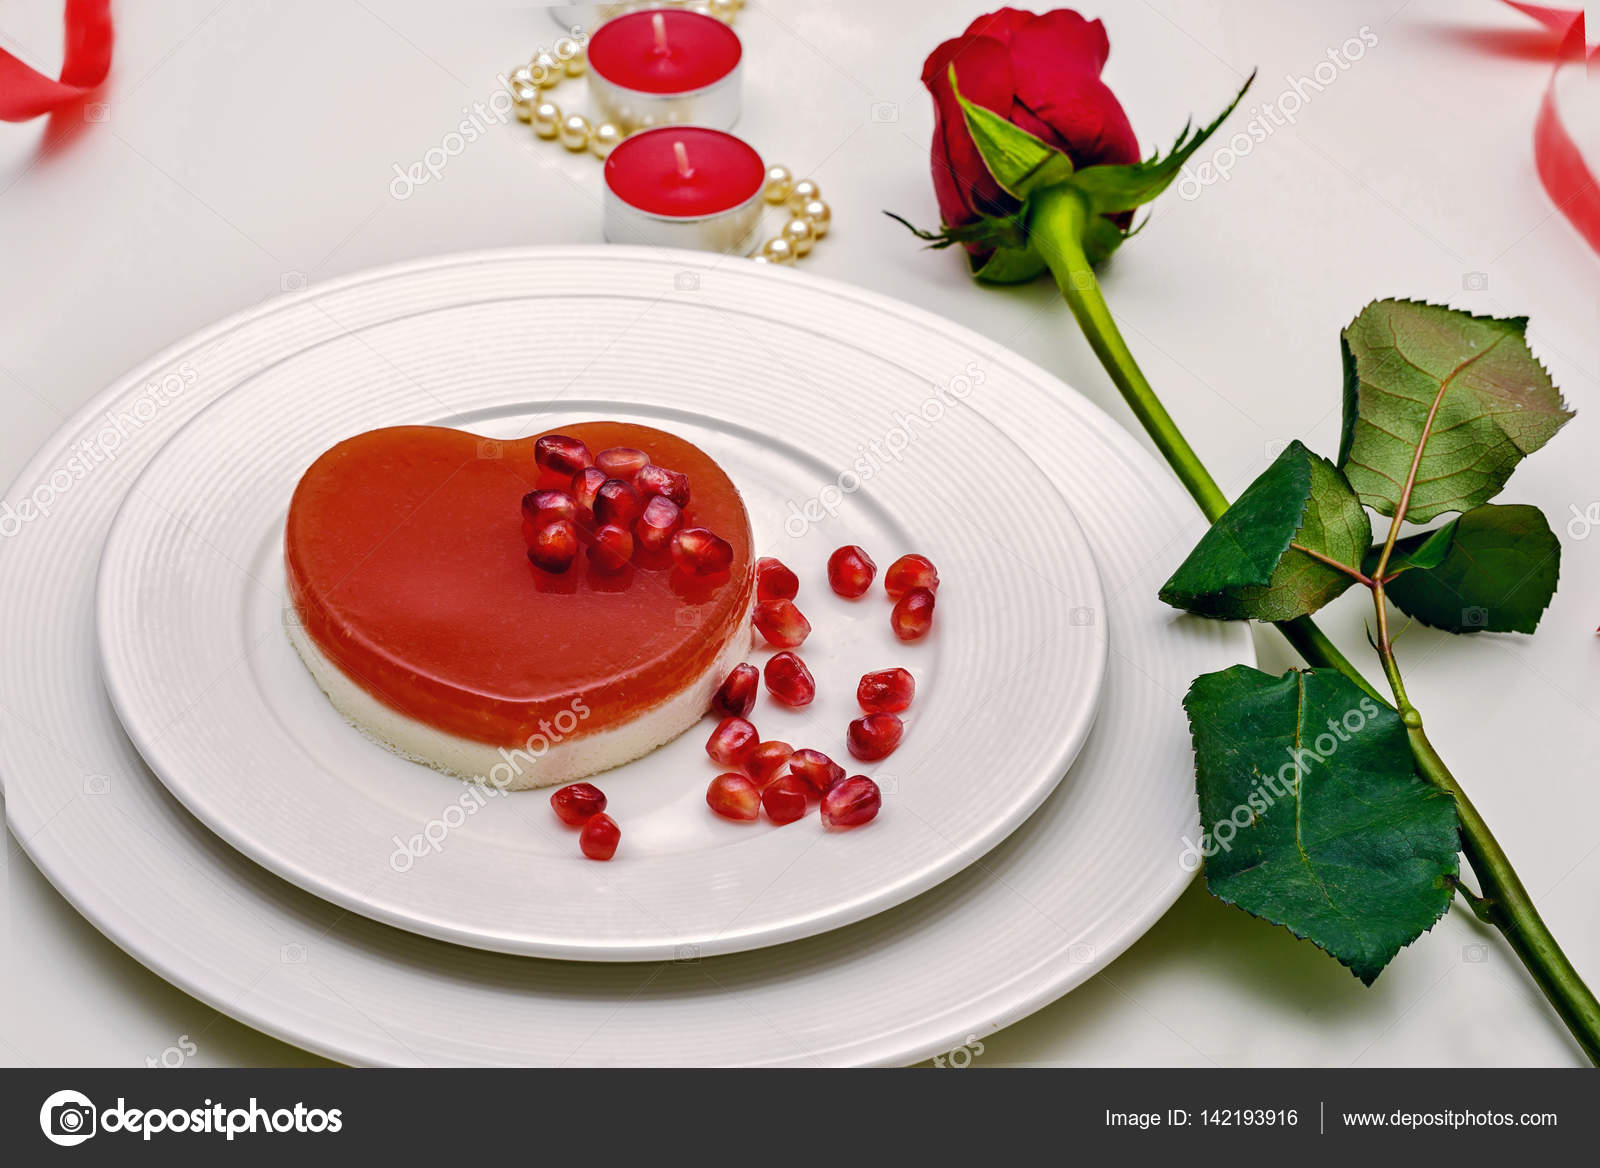 Heart shaped red cake on a white plate. Delicious dessert for Valentines Day Romantic dinner & Heart shaped red cake on a white plate. Delicious dessert for ...